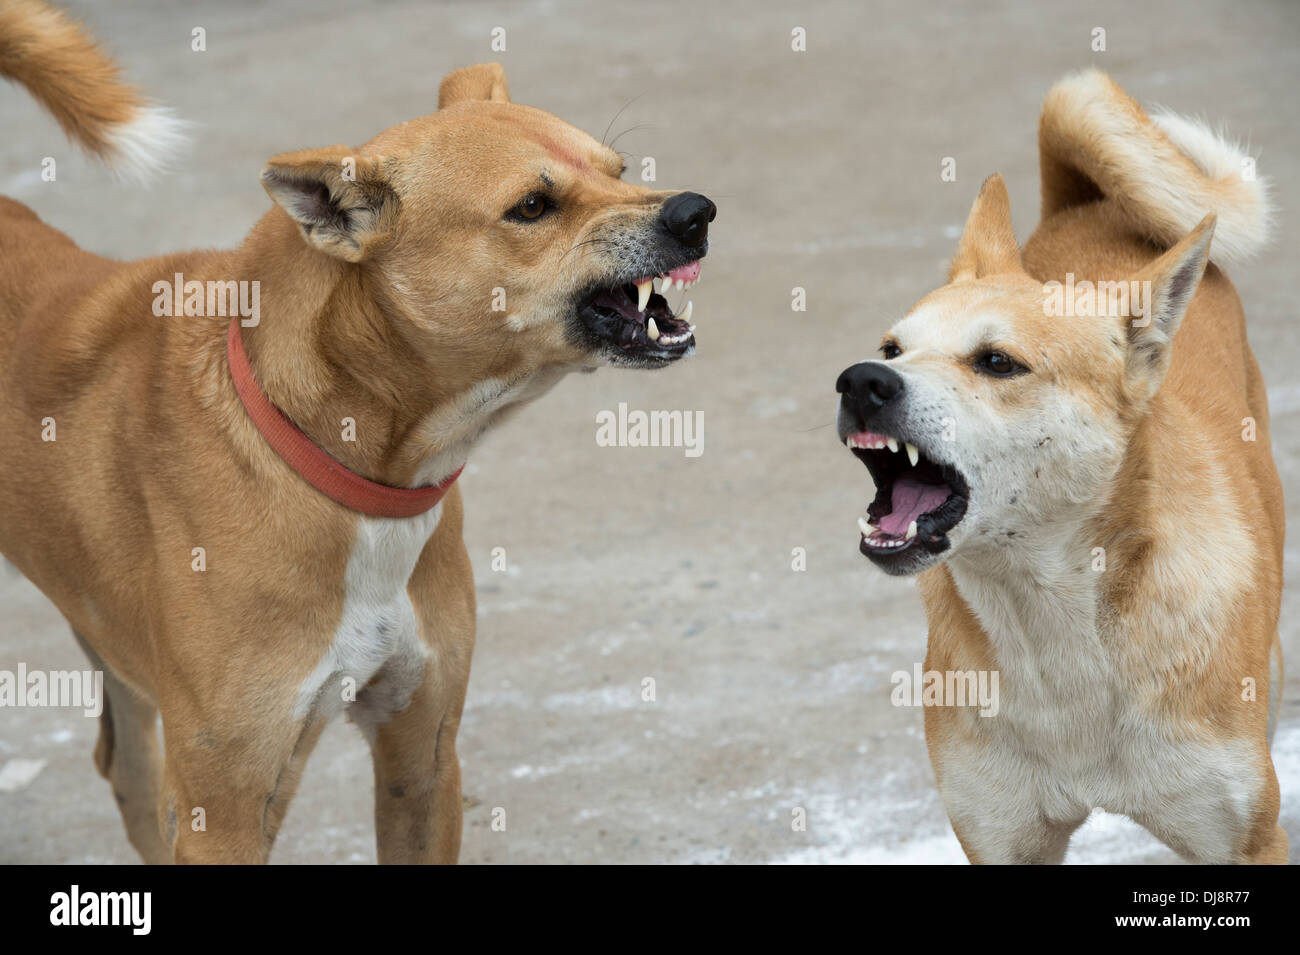 Indian stray dogs growling and snarling at each other. India - Stock Image